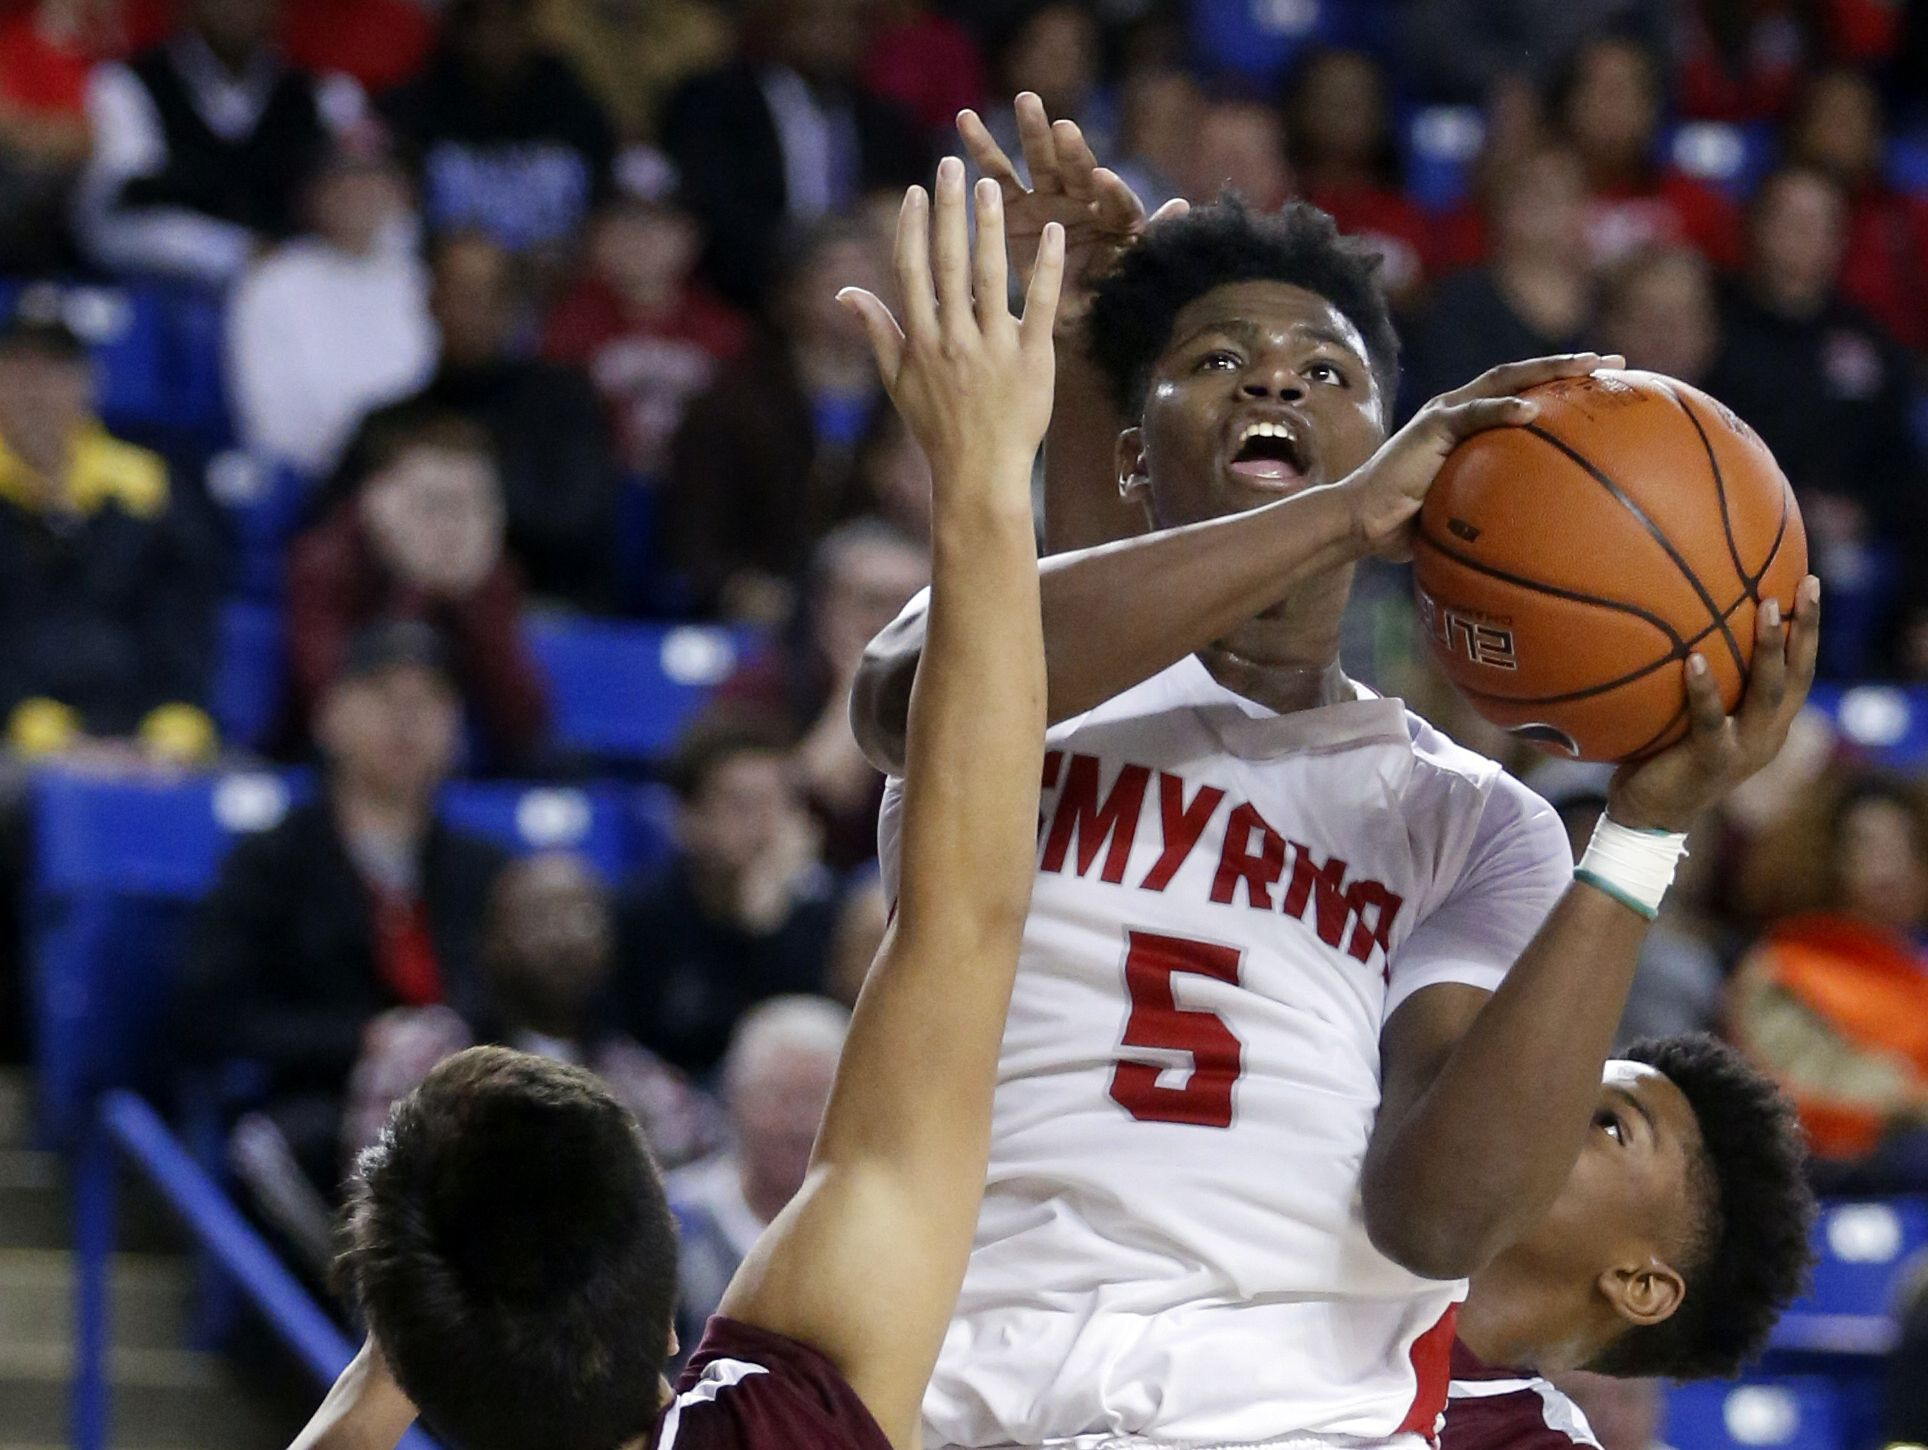 Smyrna's Jaymeir Garnett shoots over Caravel's Brandon Sengphachanh in the second half of the Eagles' 61-53 win in the DIAA state tournament title game at the Bob Carpenter Center Saturday.